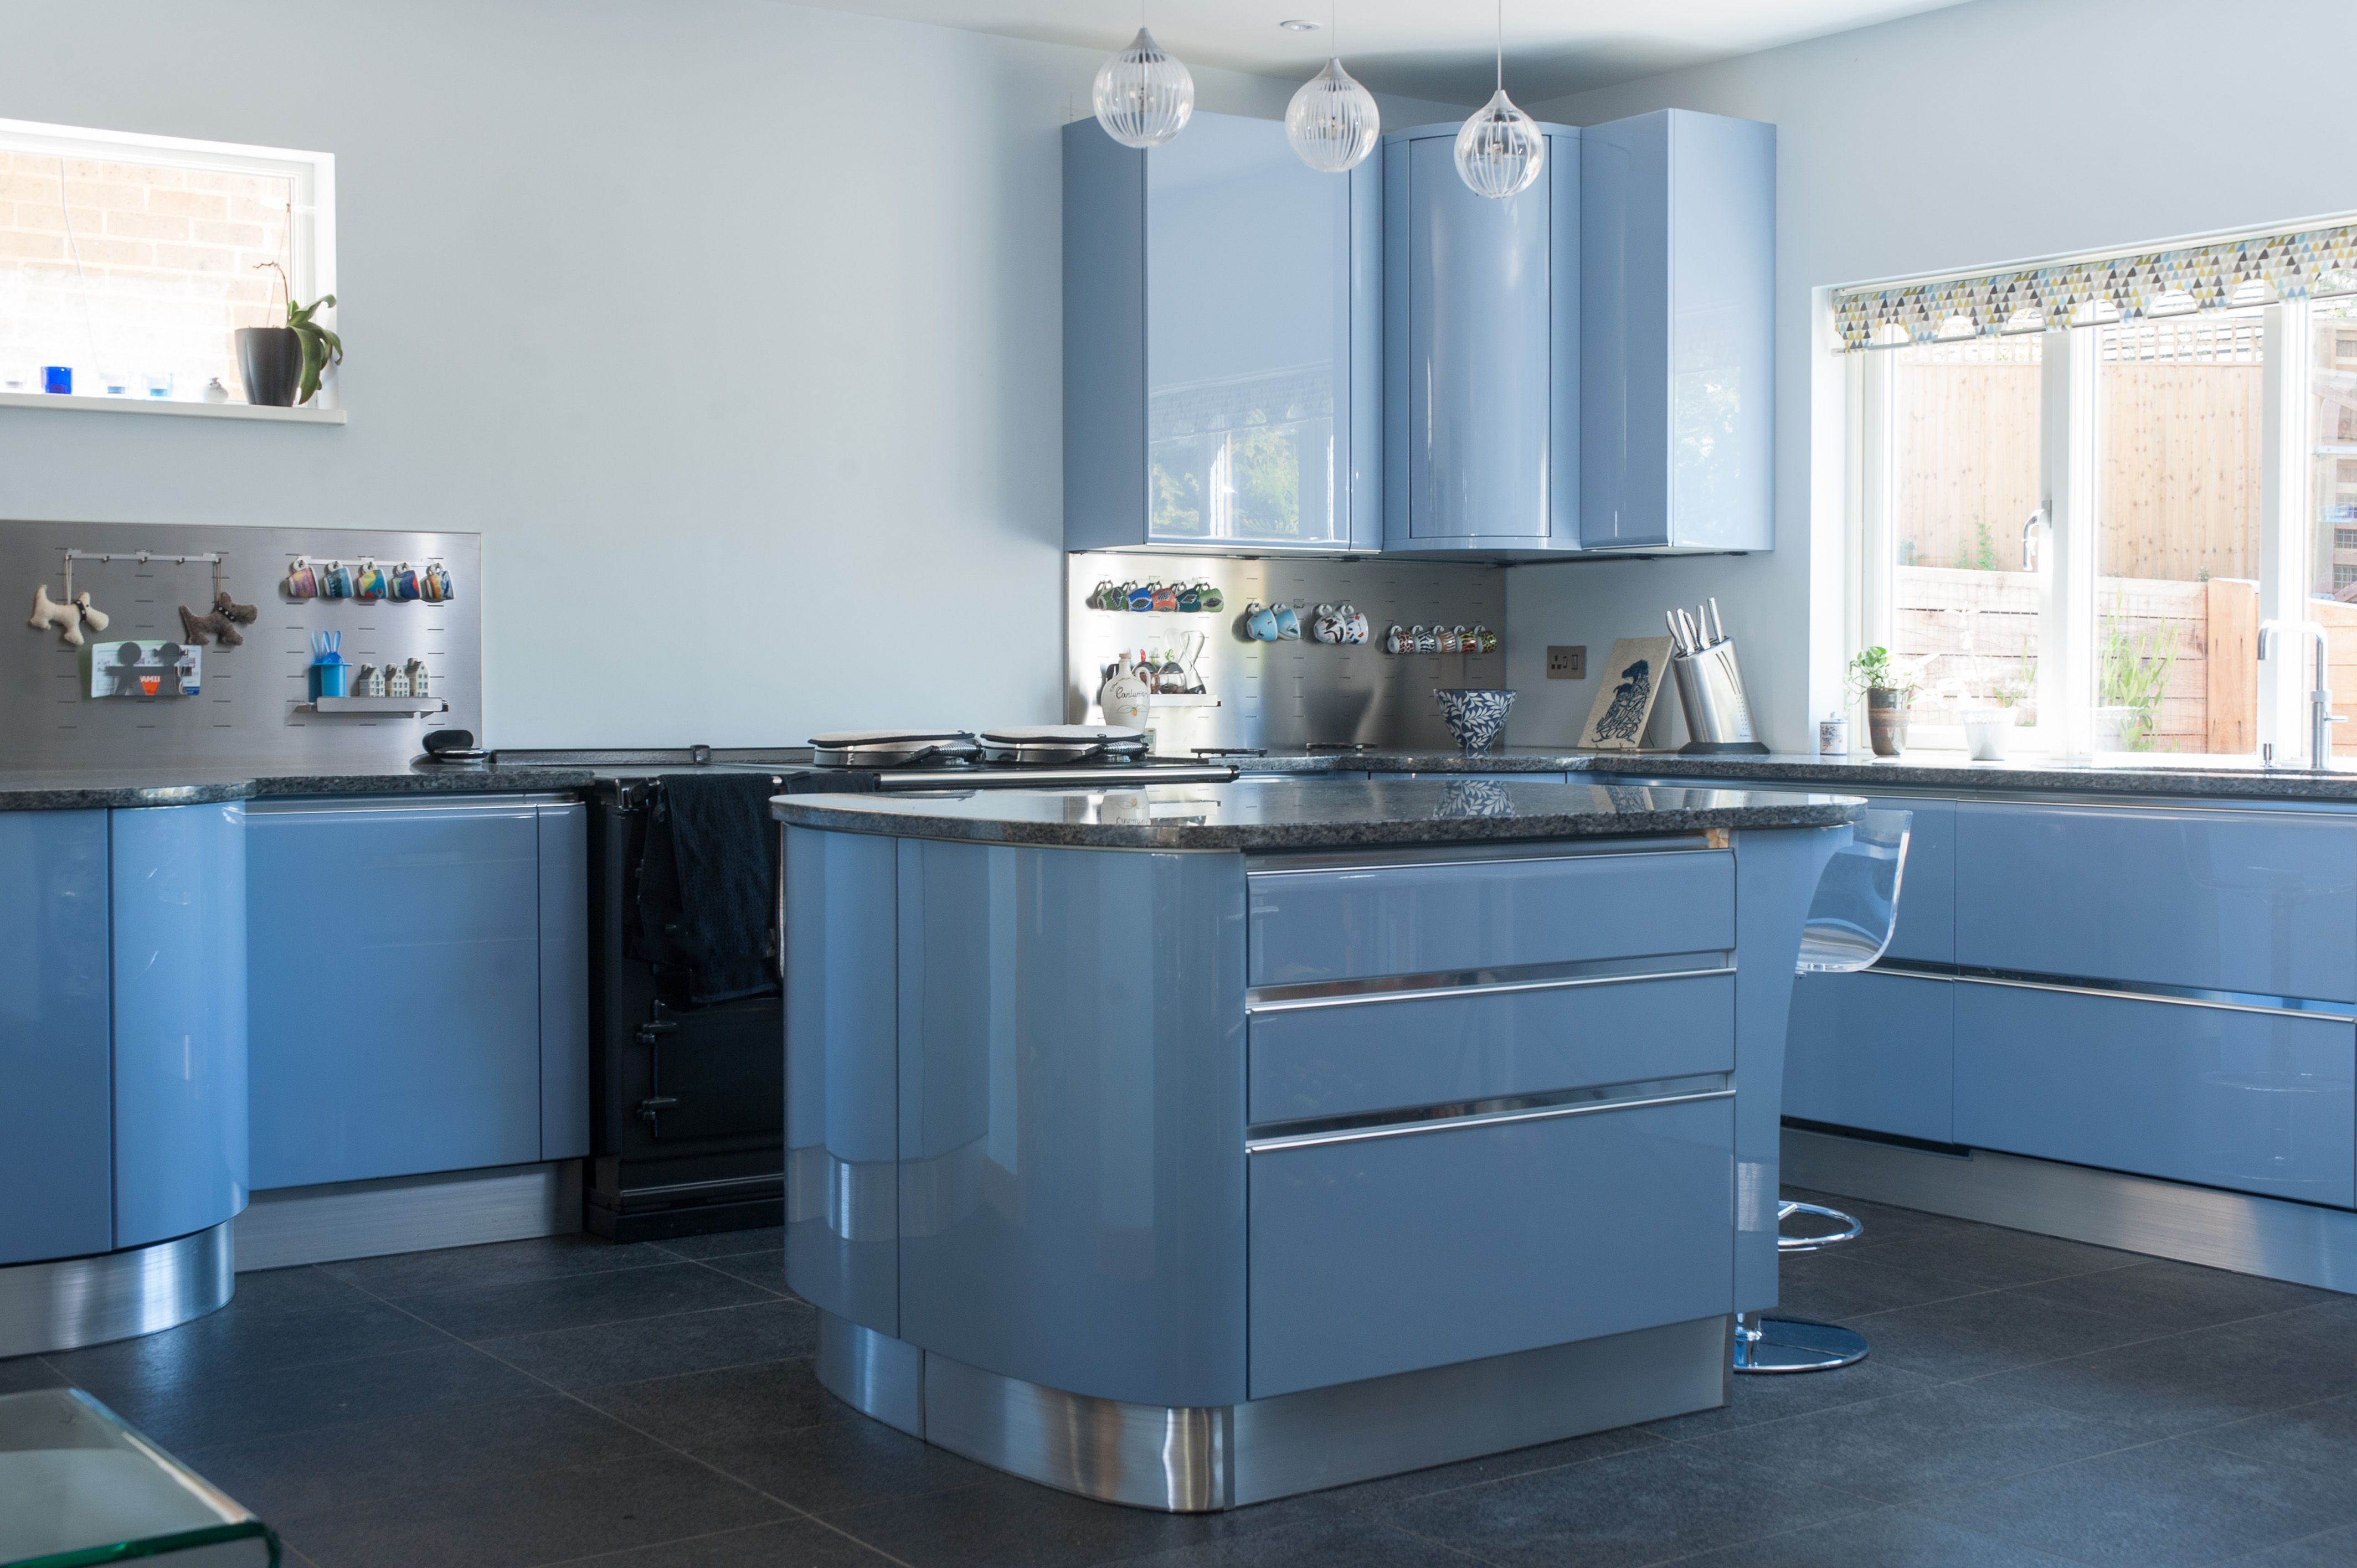 TESS Kitchen by Scavolini, purchased from Stoneworld Kitchens in ...